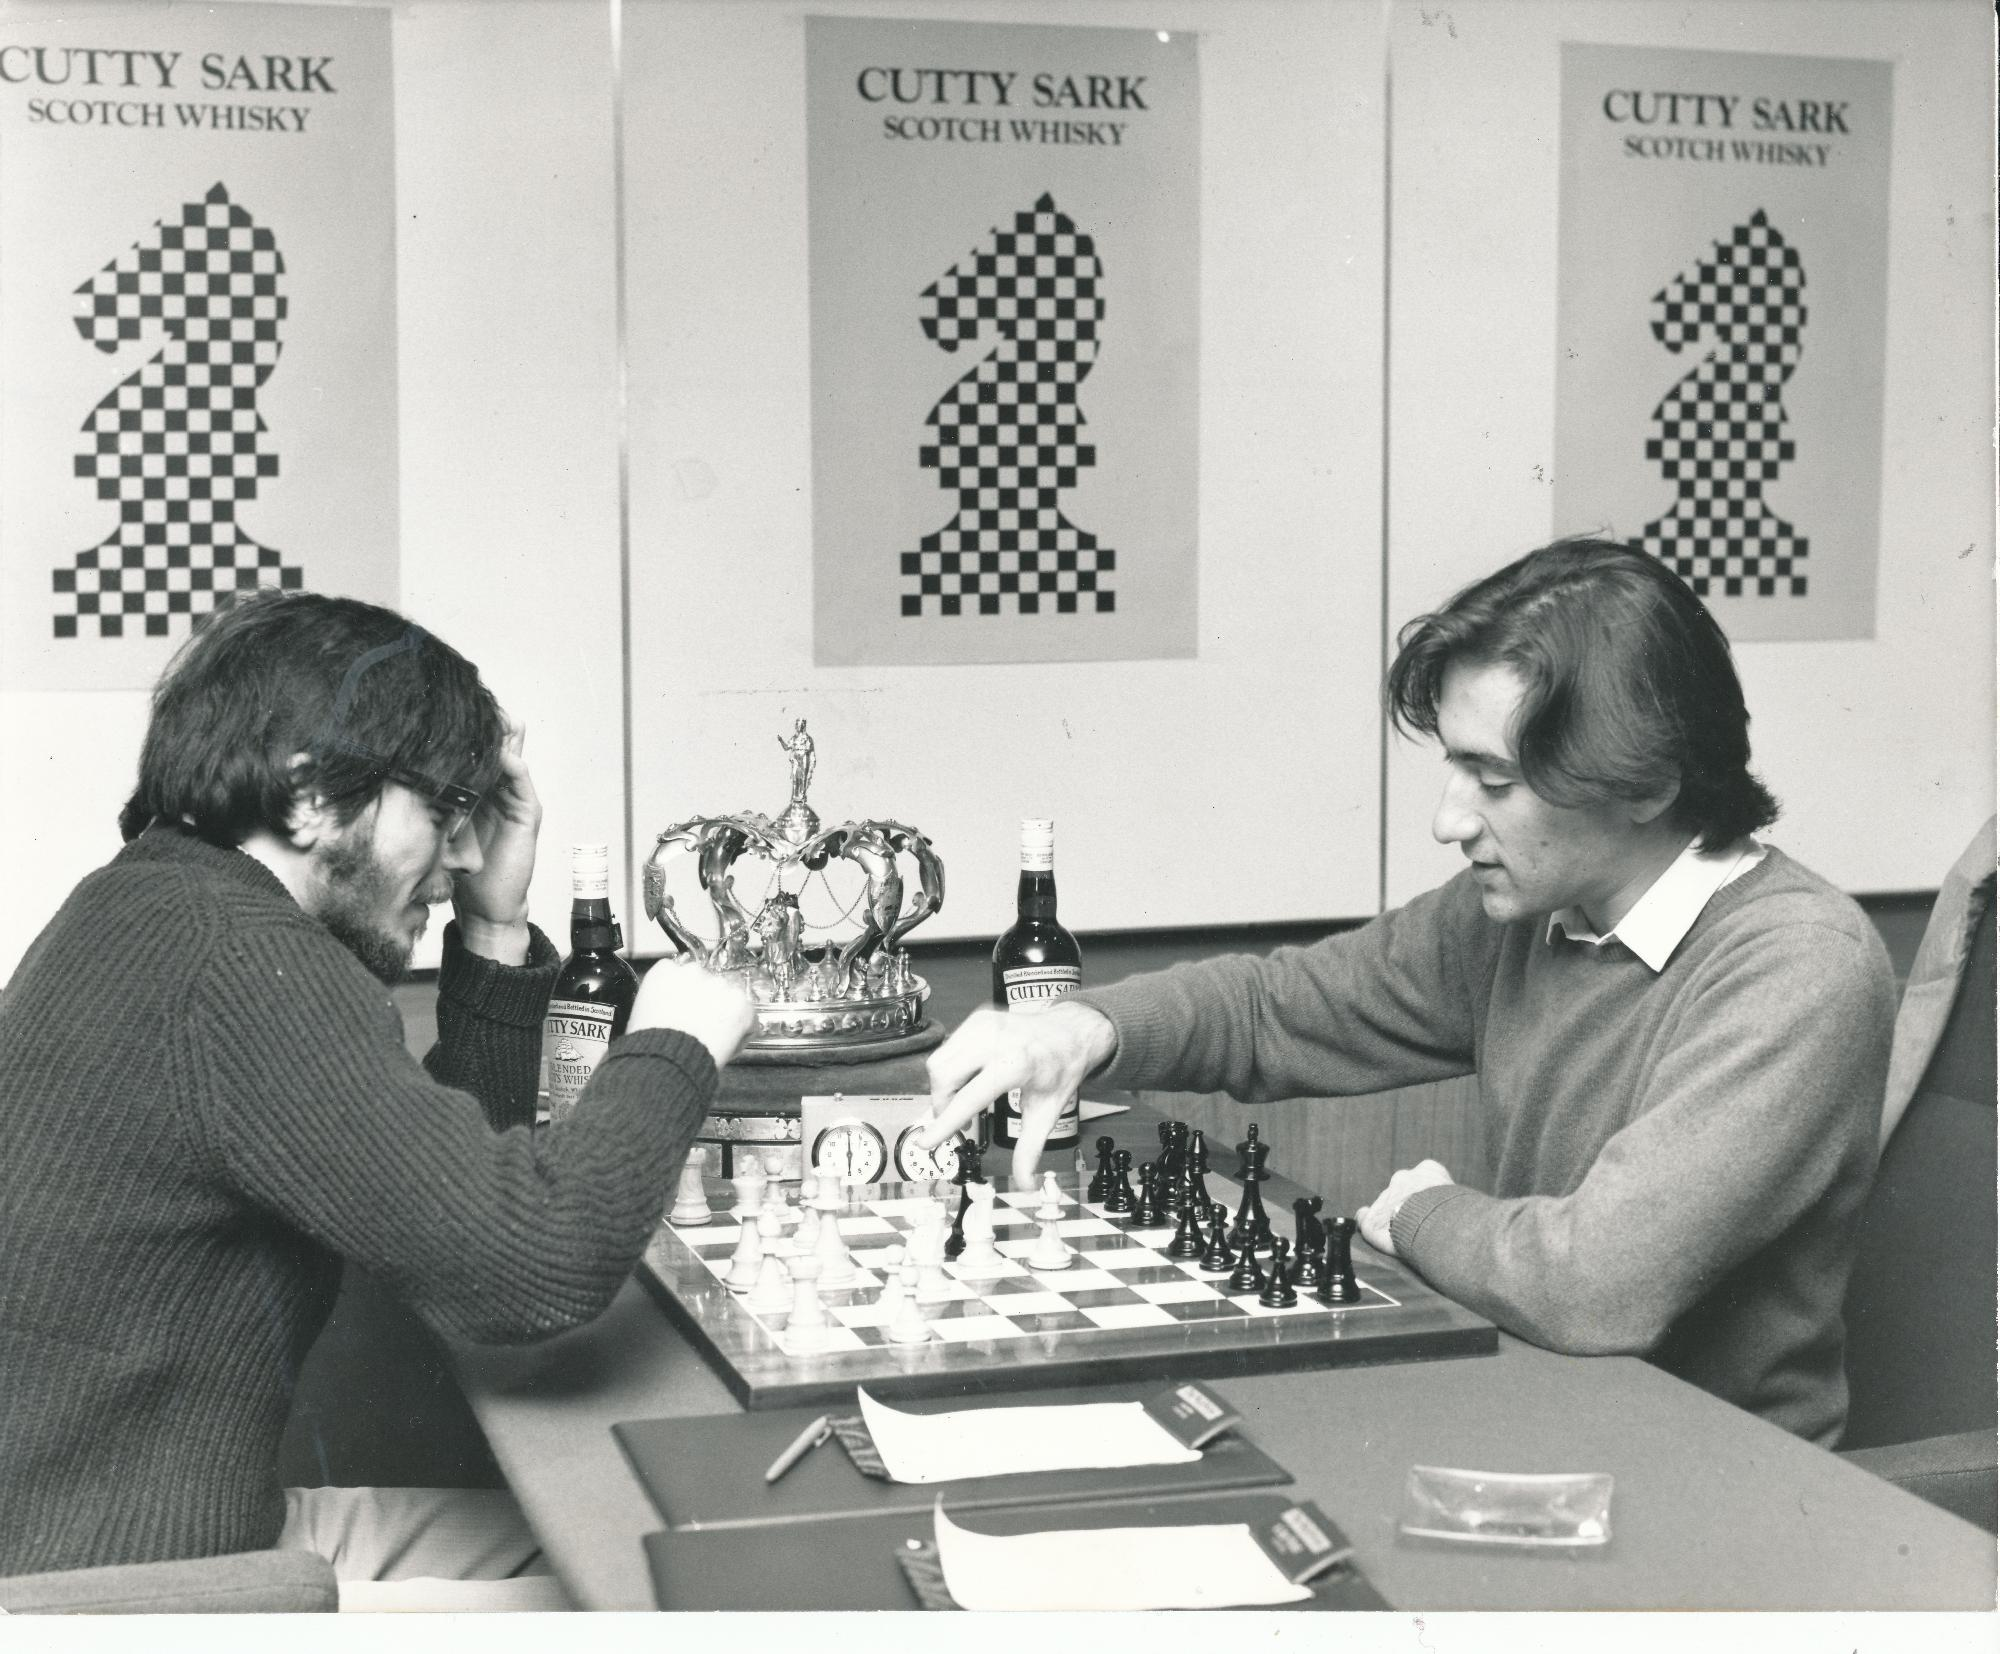 Mike plays William Hartston during the play-off for the 1973 British Championship